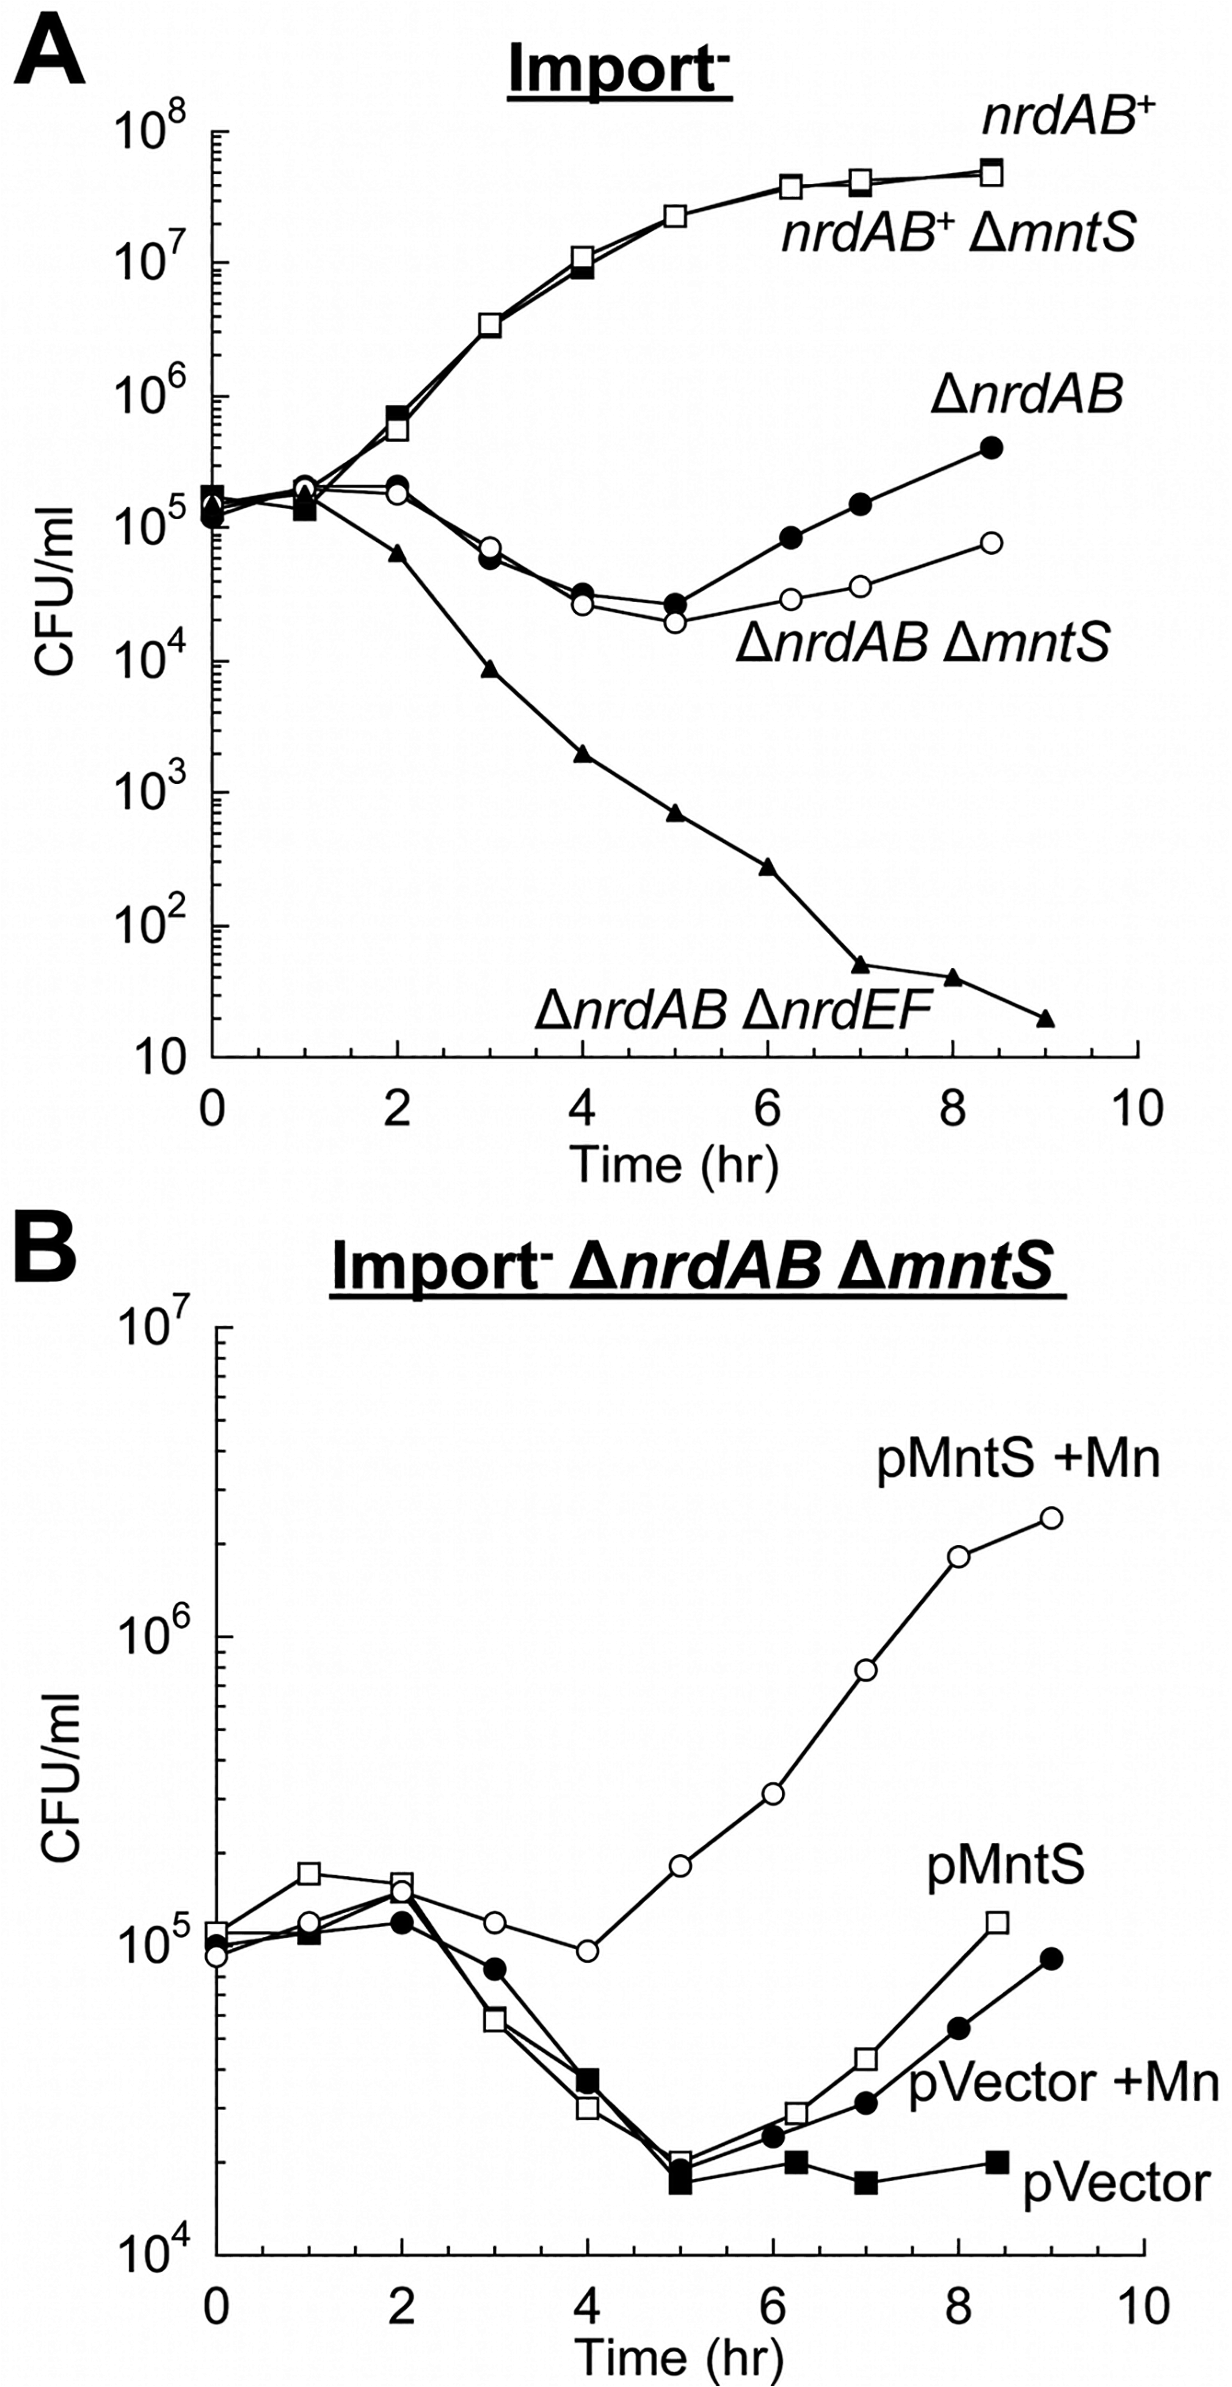 MntS helps activate the manganese-dependent RNR, NrdEF.